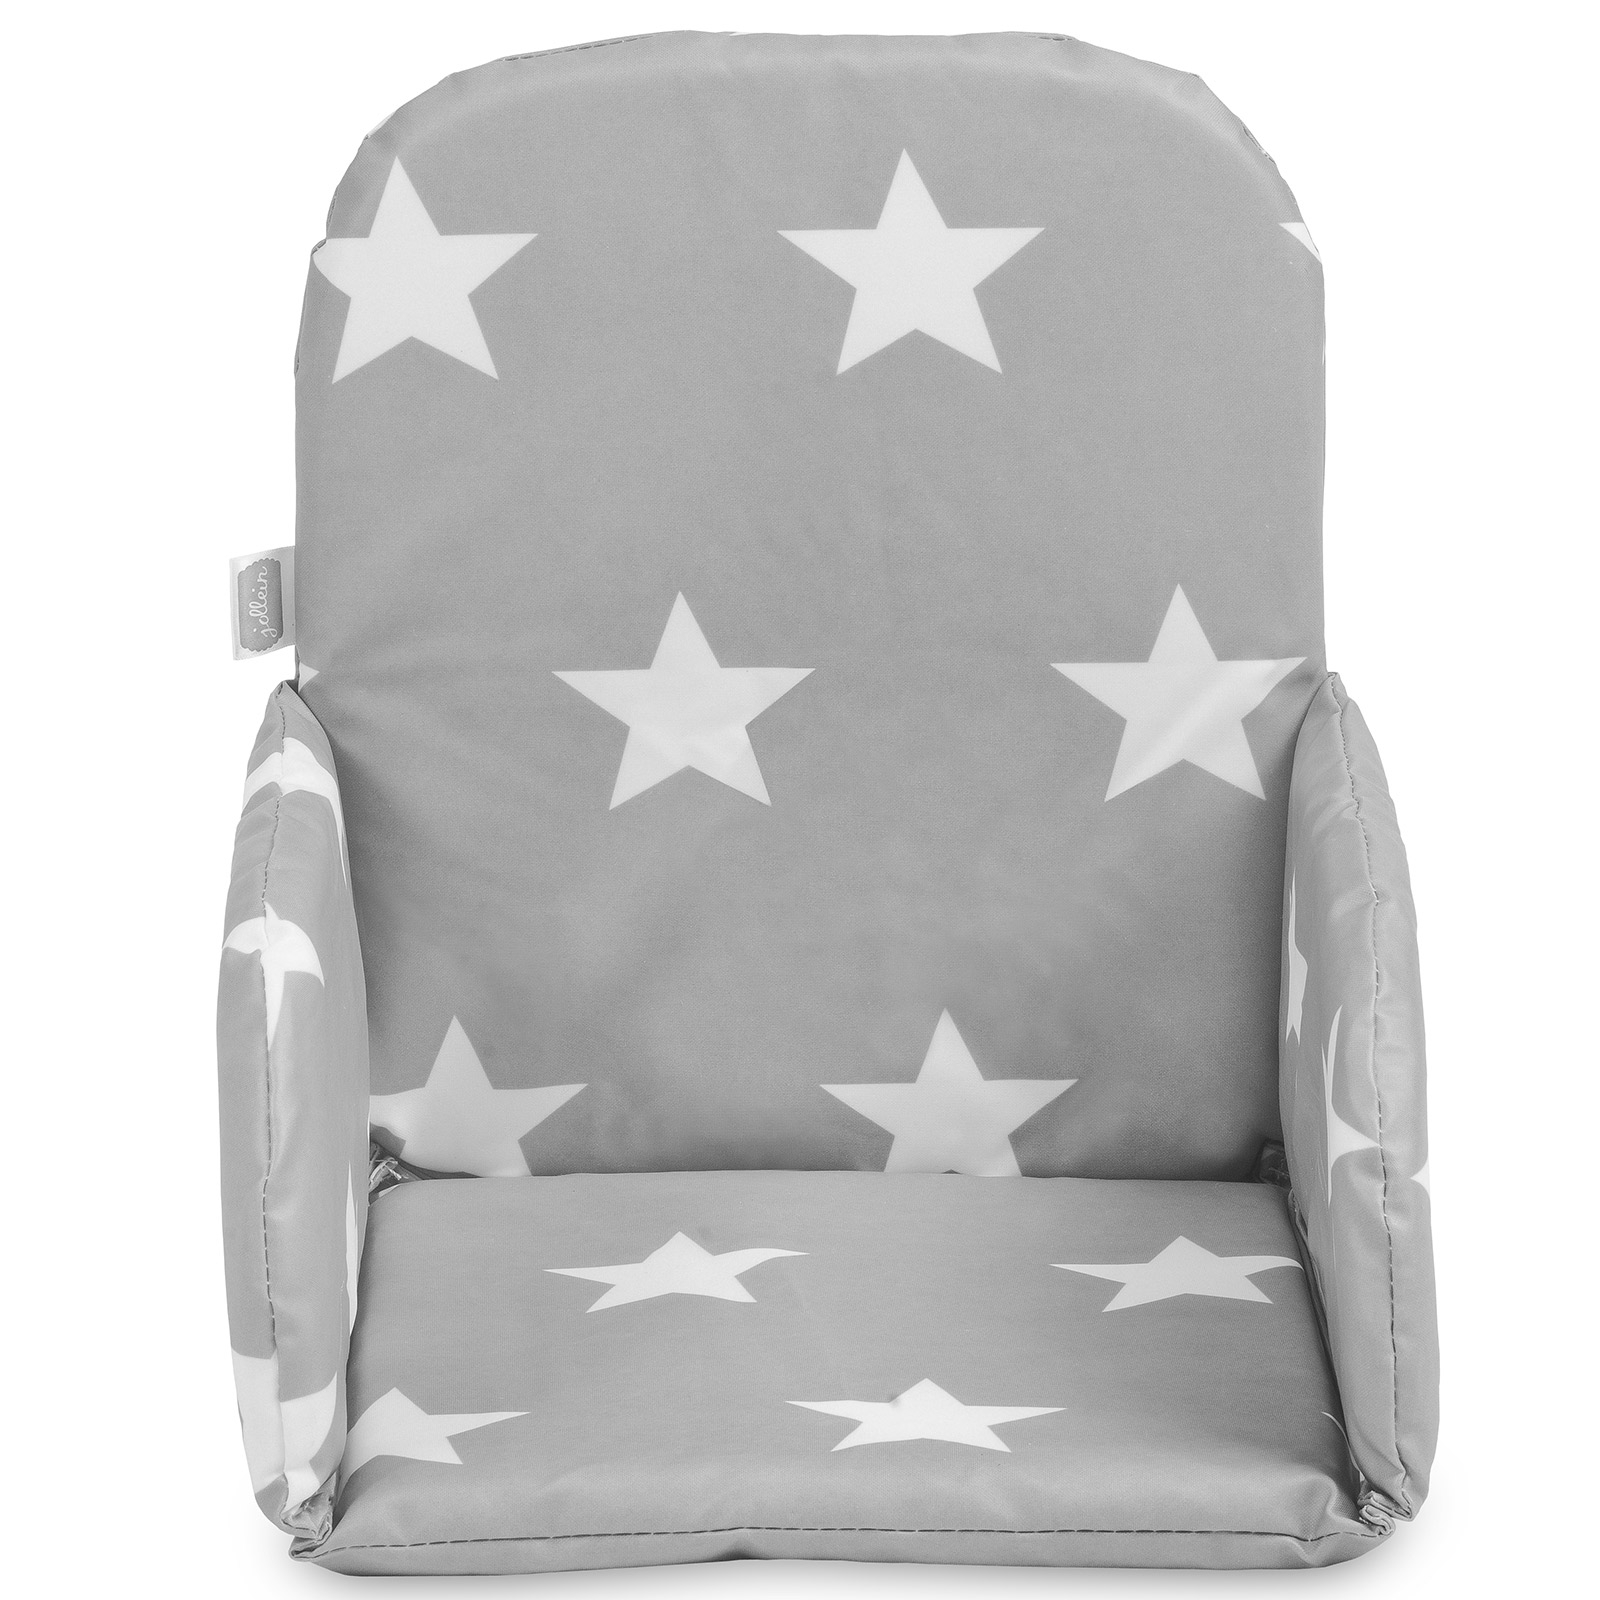 coussin chaise haute little star etoile gris anthracite